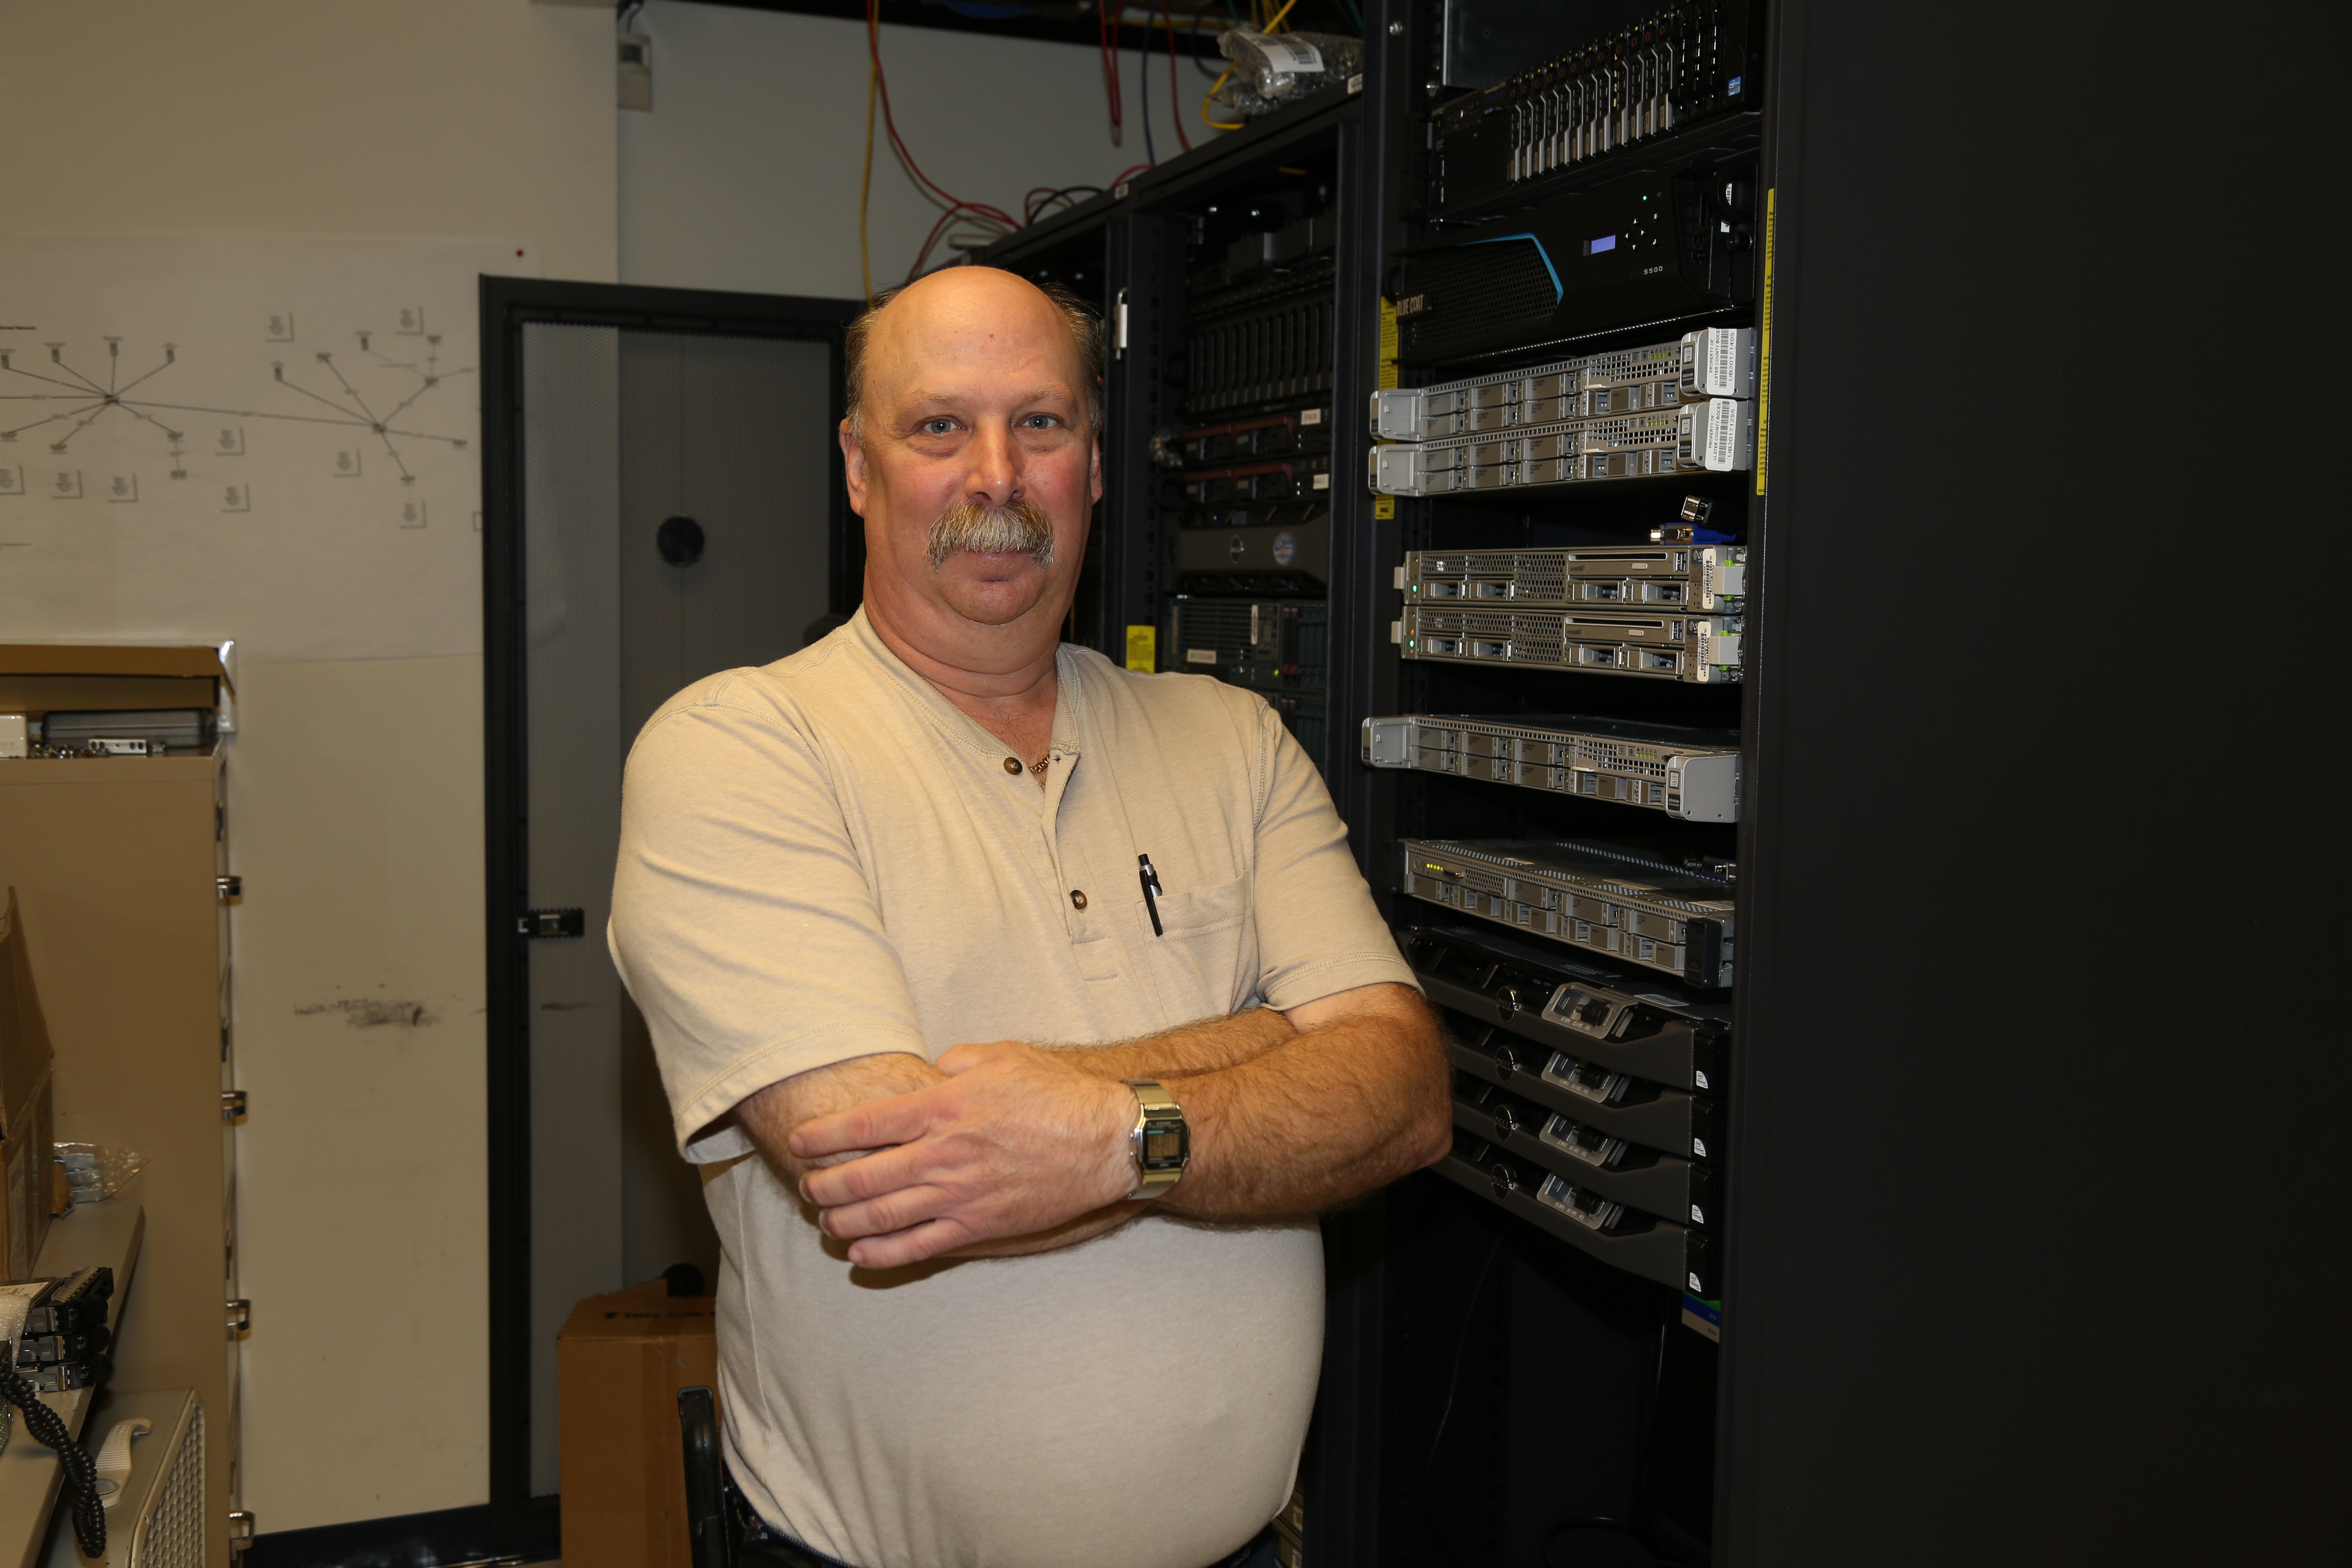 Ulster BOCES Reveals the 'Man Behind the Curtain'